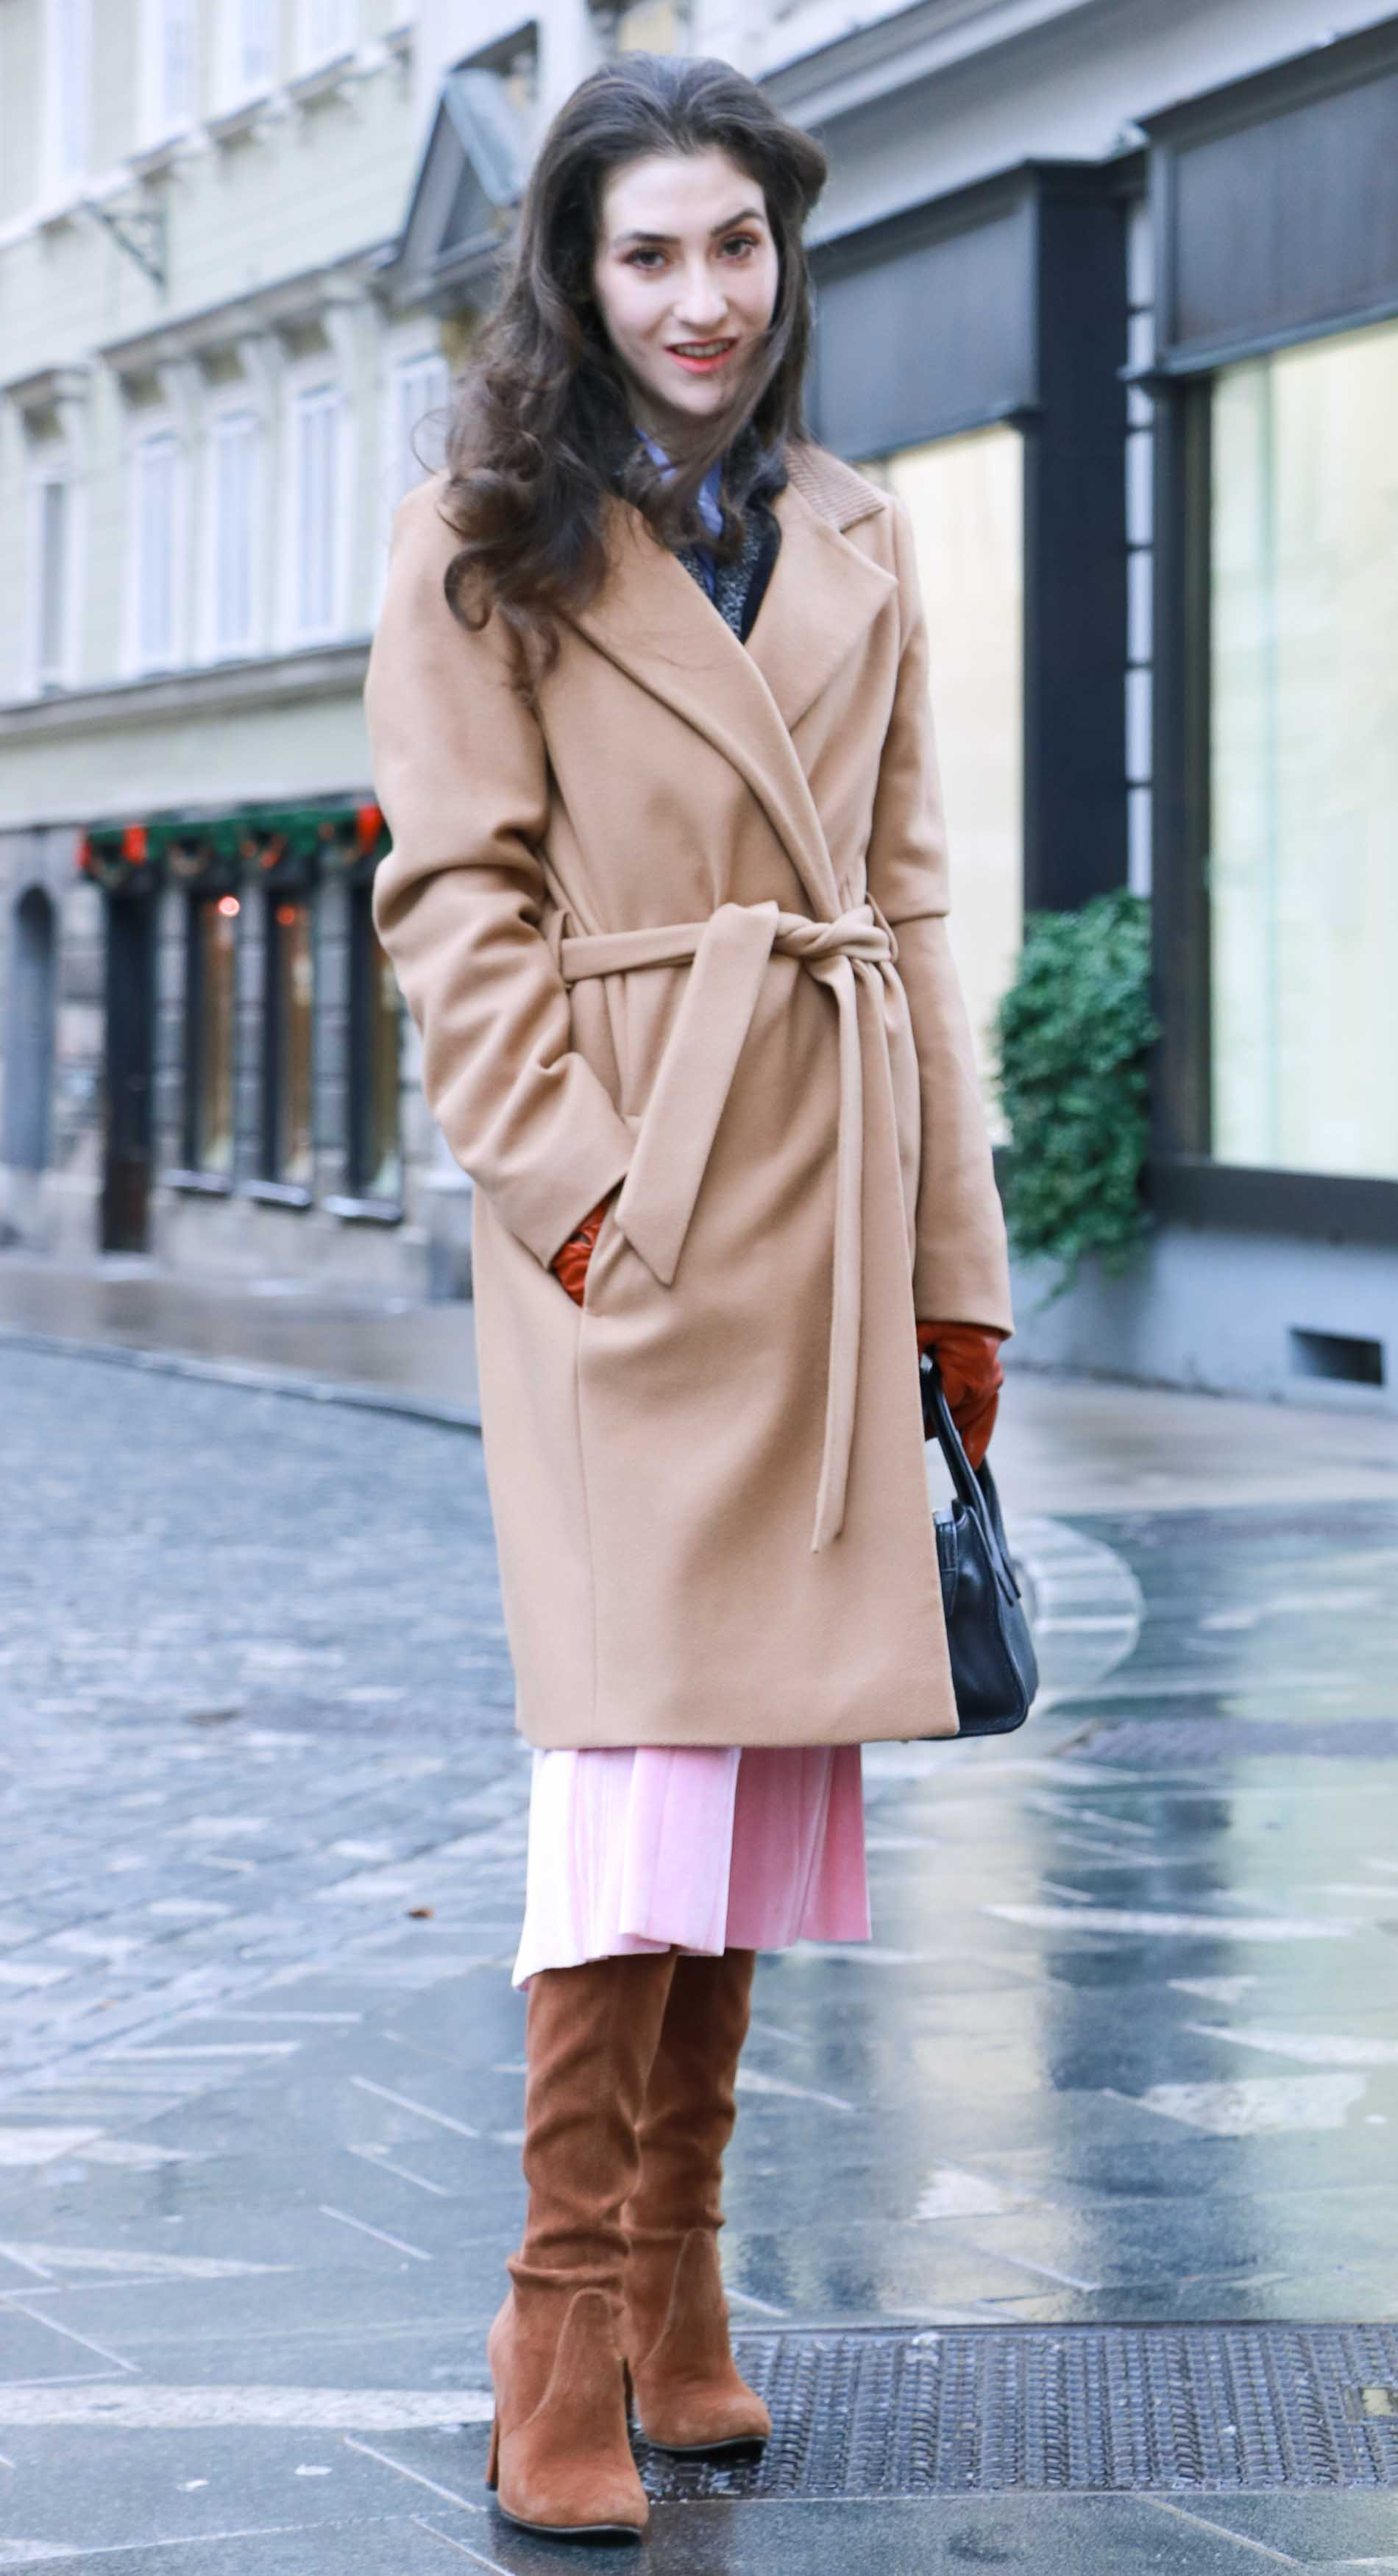 Fashion Blogger Veronika Lipar of Brunette from Wall Street wearing fashionable winter outfit, ESCADA wrap camel coat, pink velvet midi pleated skirt, brown Stuart Weitzman Highland OTK boots, black top handle bag, leather gloves on the streets of Ljubljana